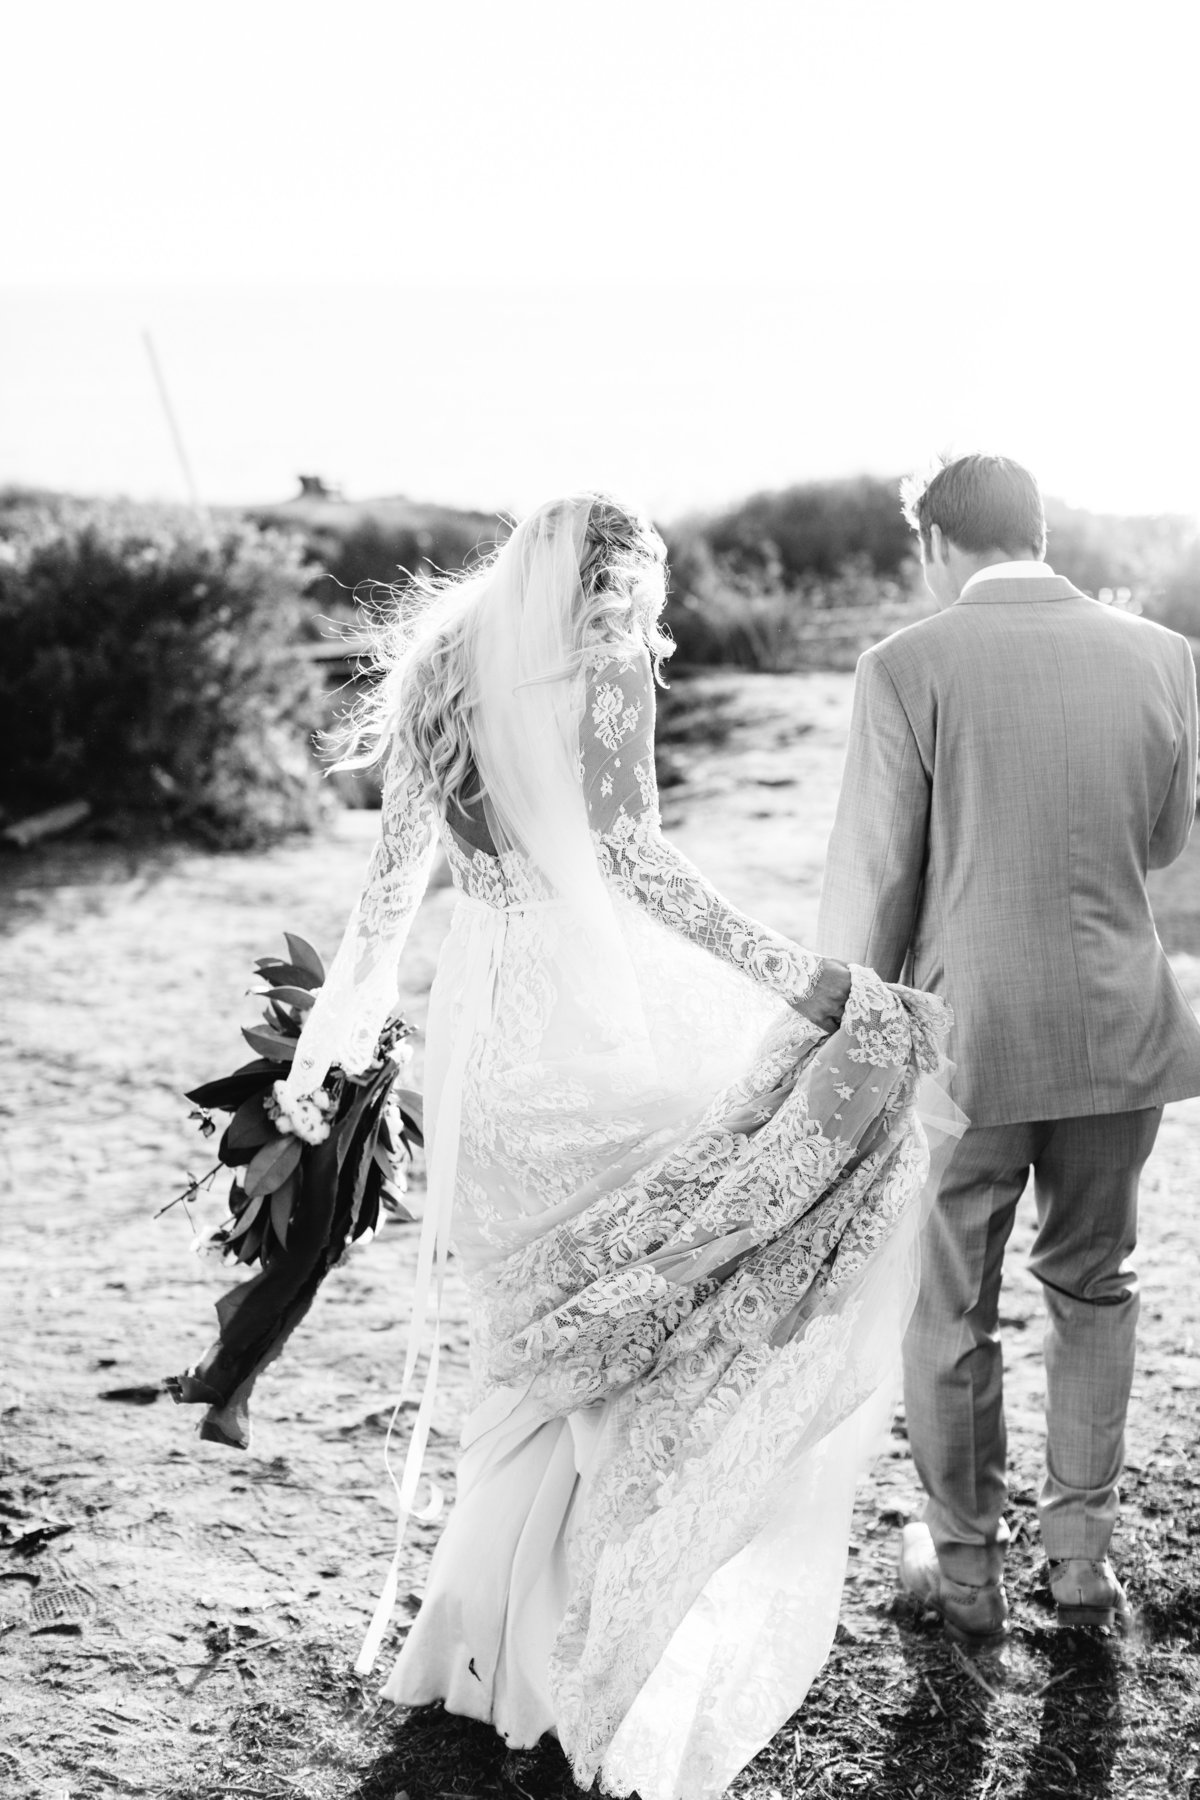 Best California Wedding Photographer-Jodee Debes Photography-373